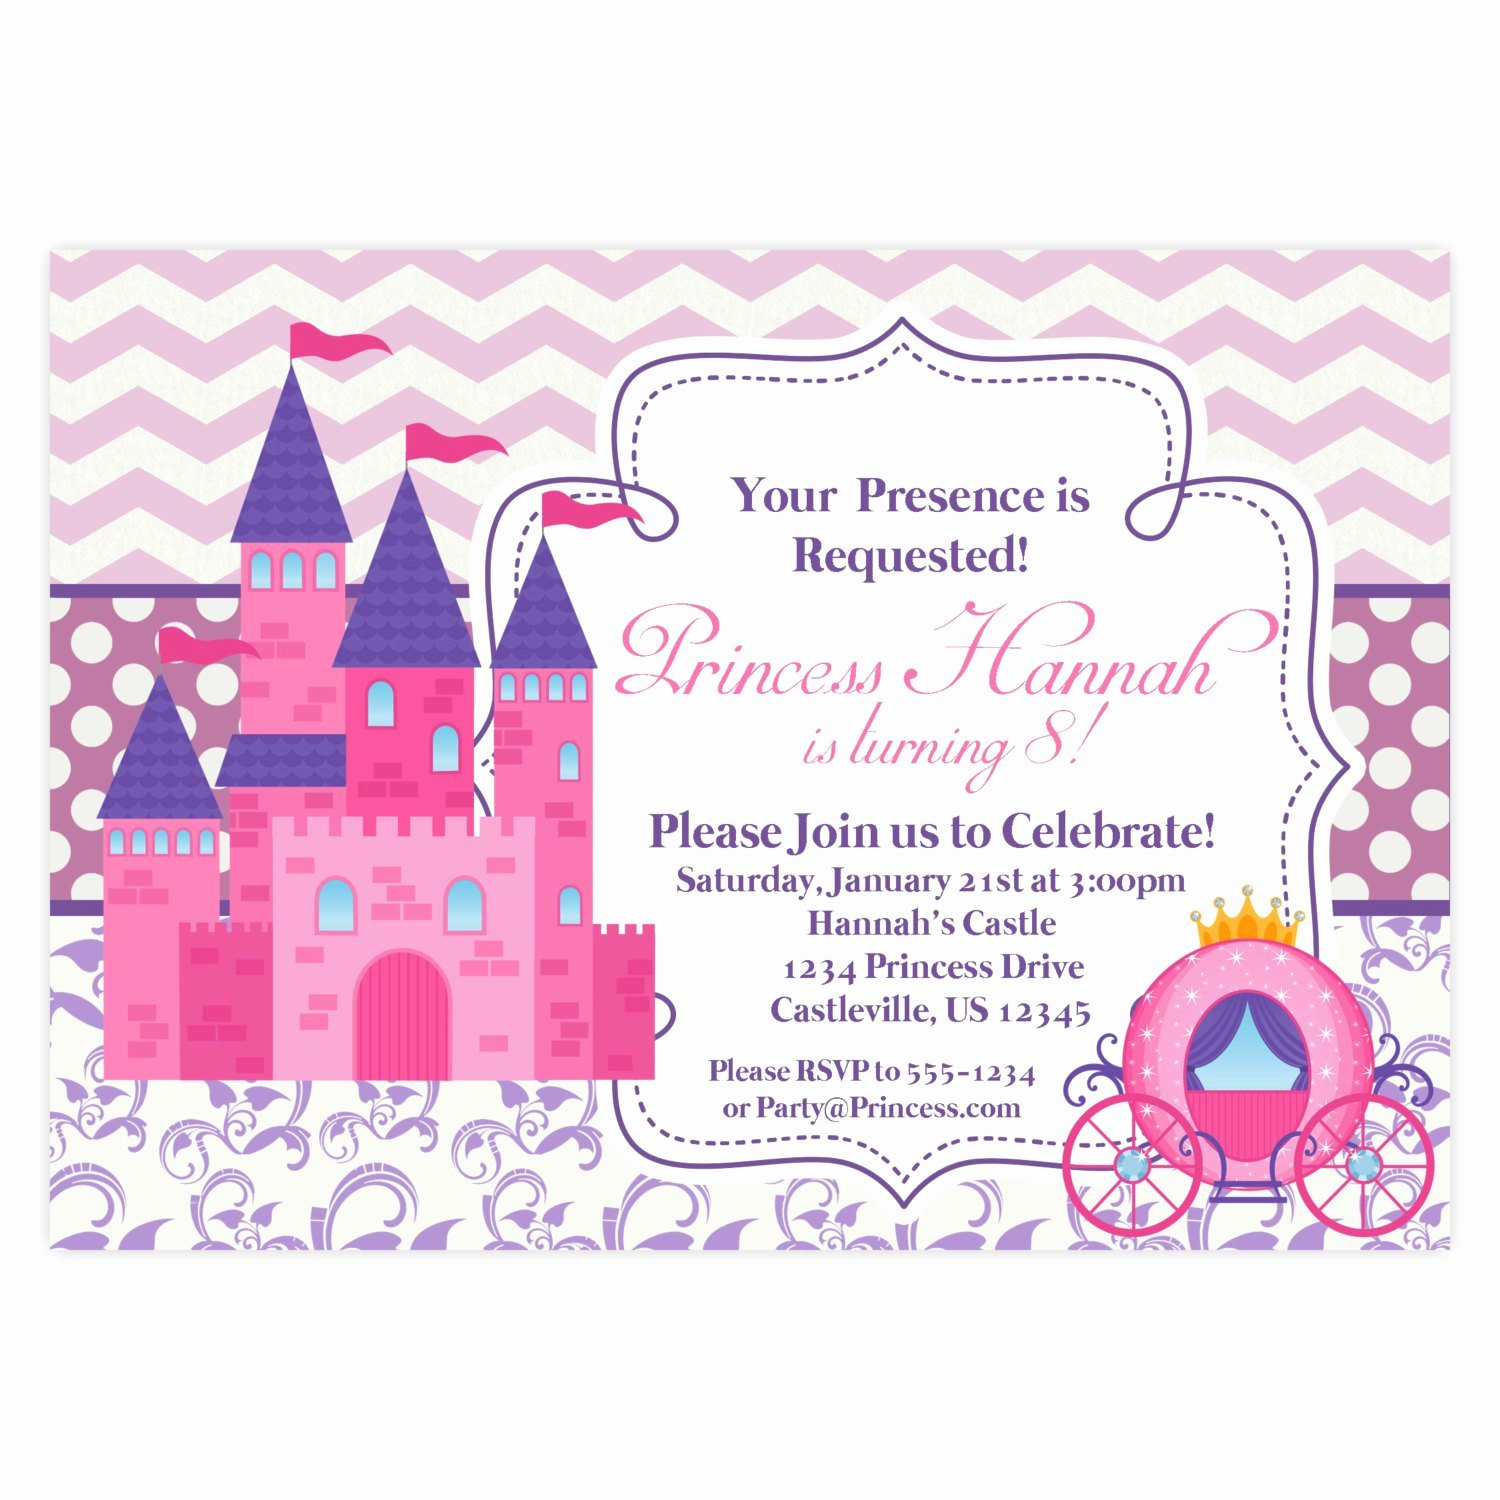 Princess Party Invitation Template Luxury Princess Invitation Retro Pink Chevron Purple Damask Royal